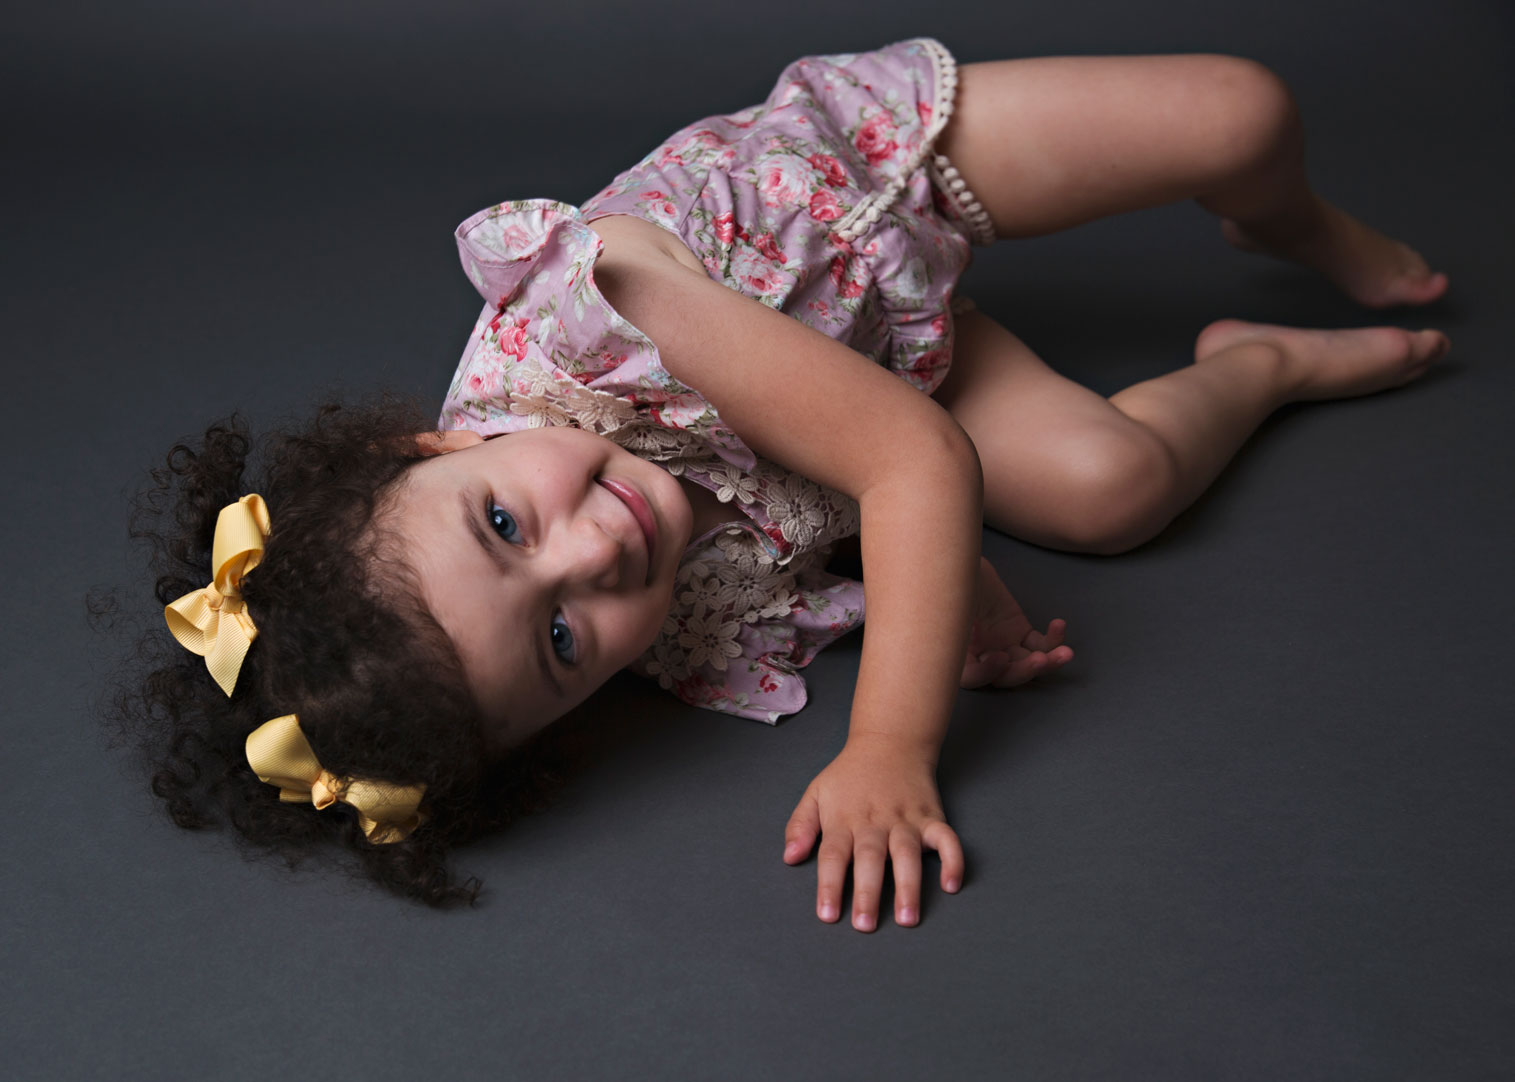 Young girl lying on floor